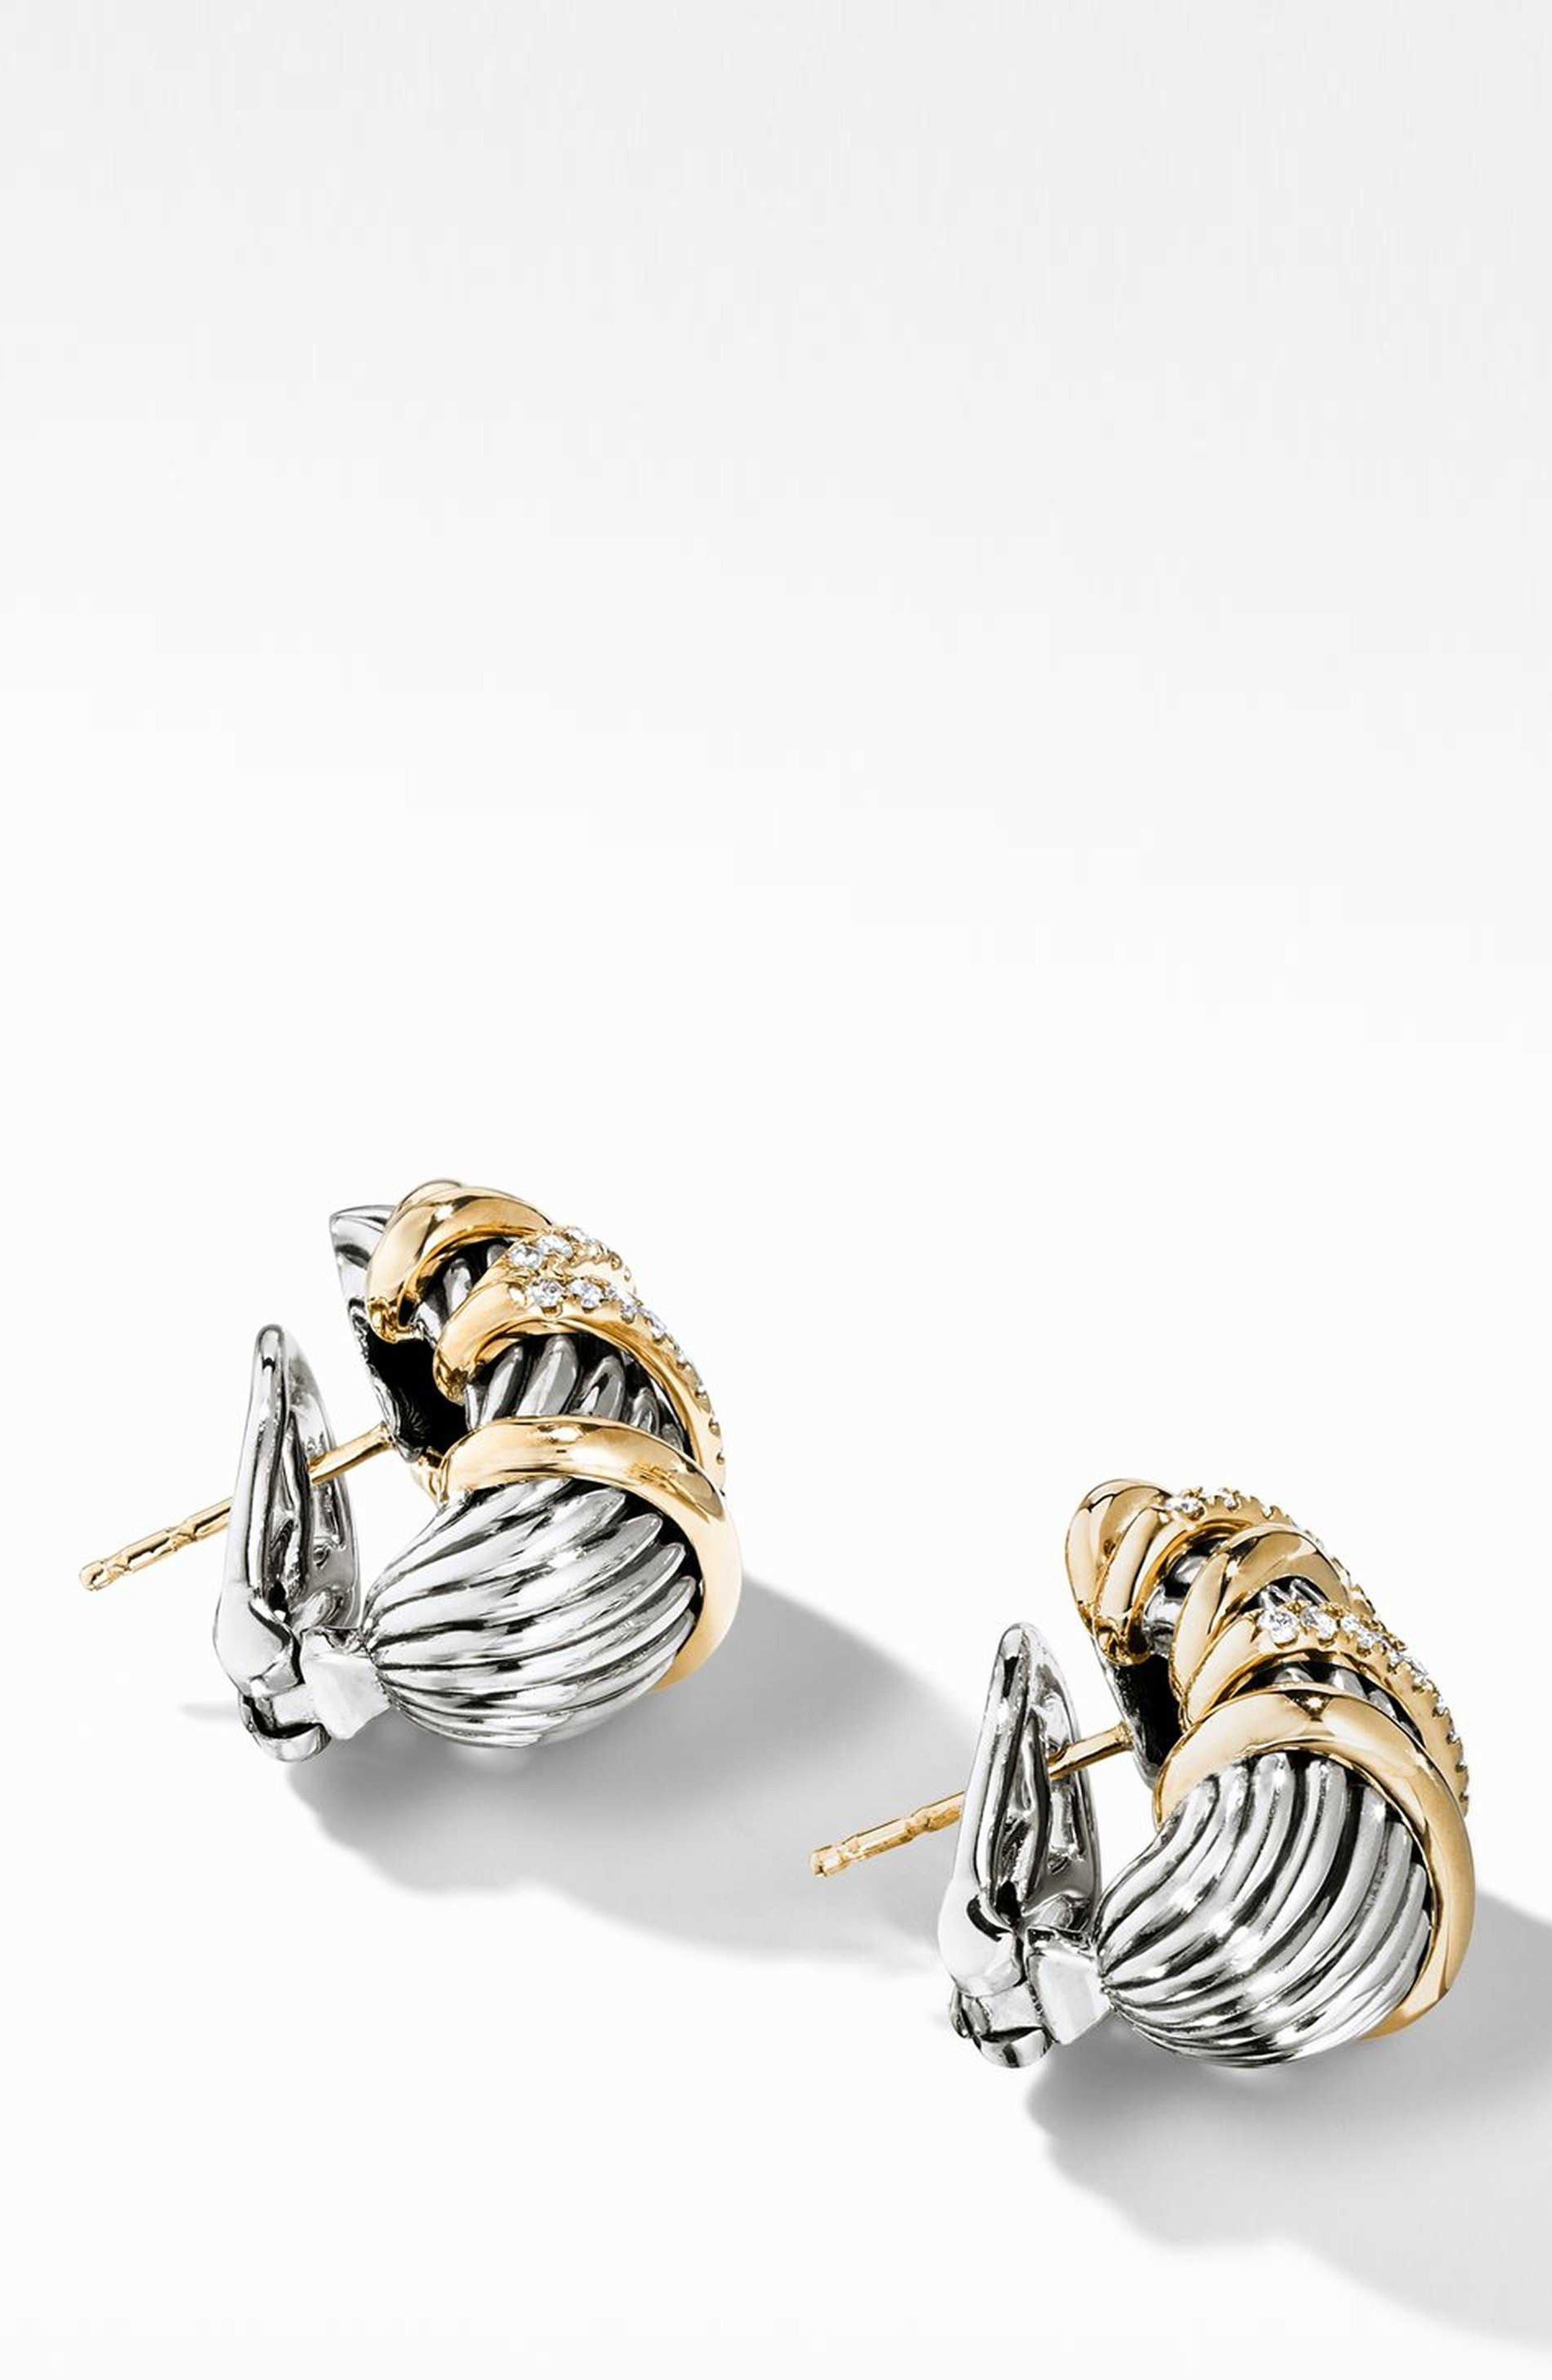 Helena Shrimp Earrings with 18K Gold and Diamonds,                             Main thumbnail 1, color,                             GOLD/ SILVER/ DIAMOND